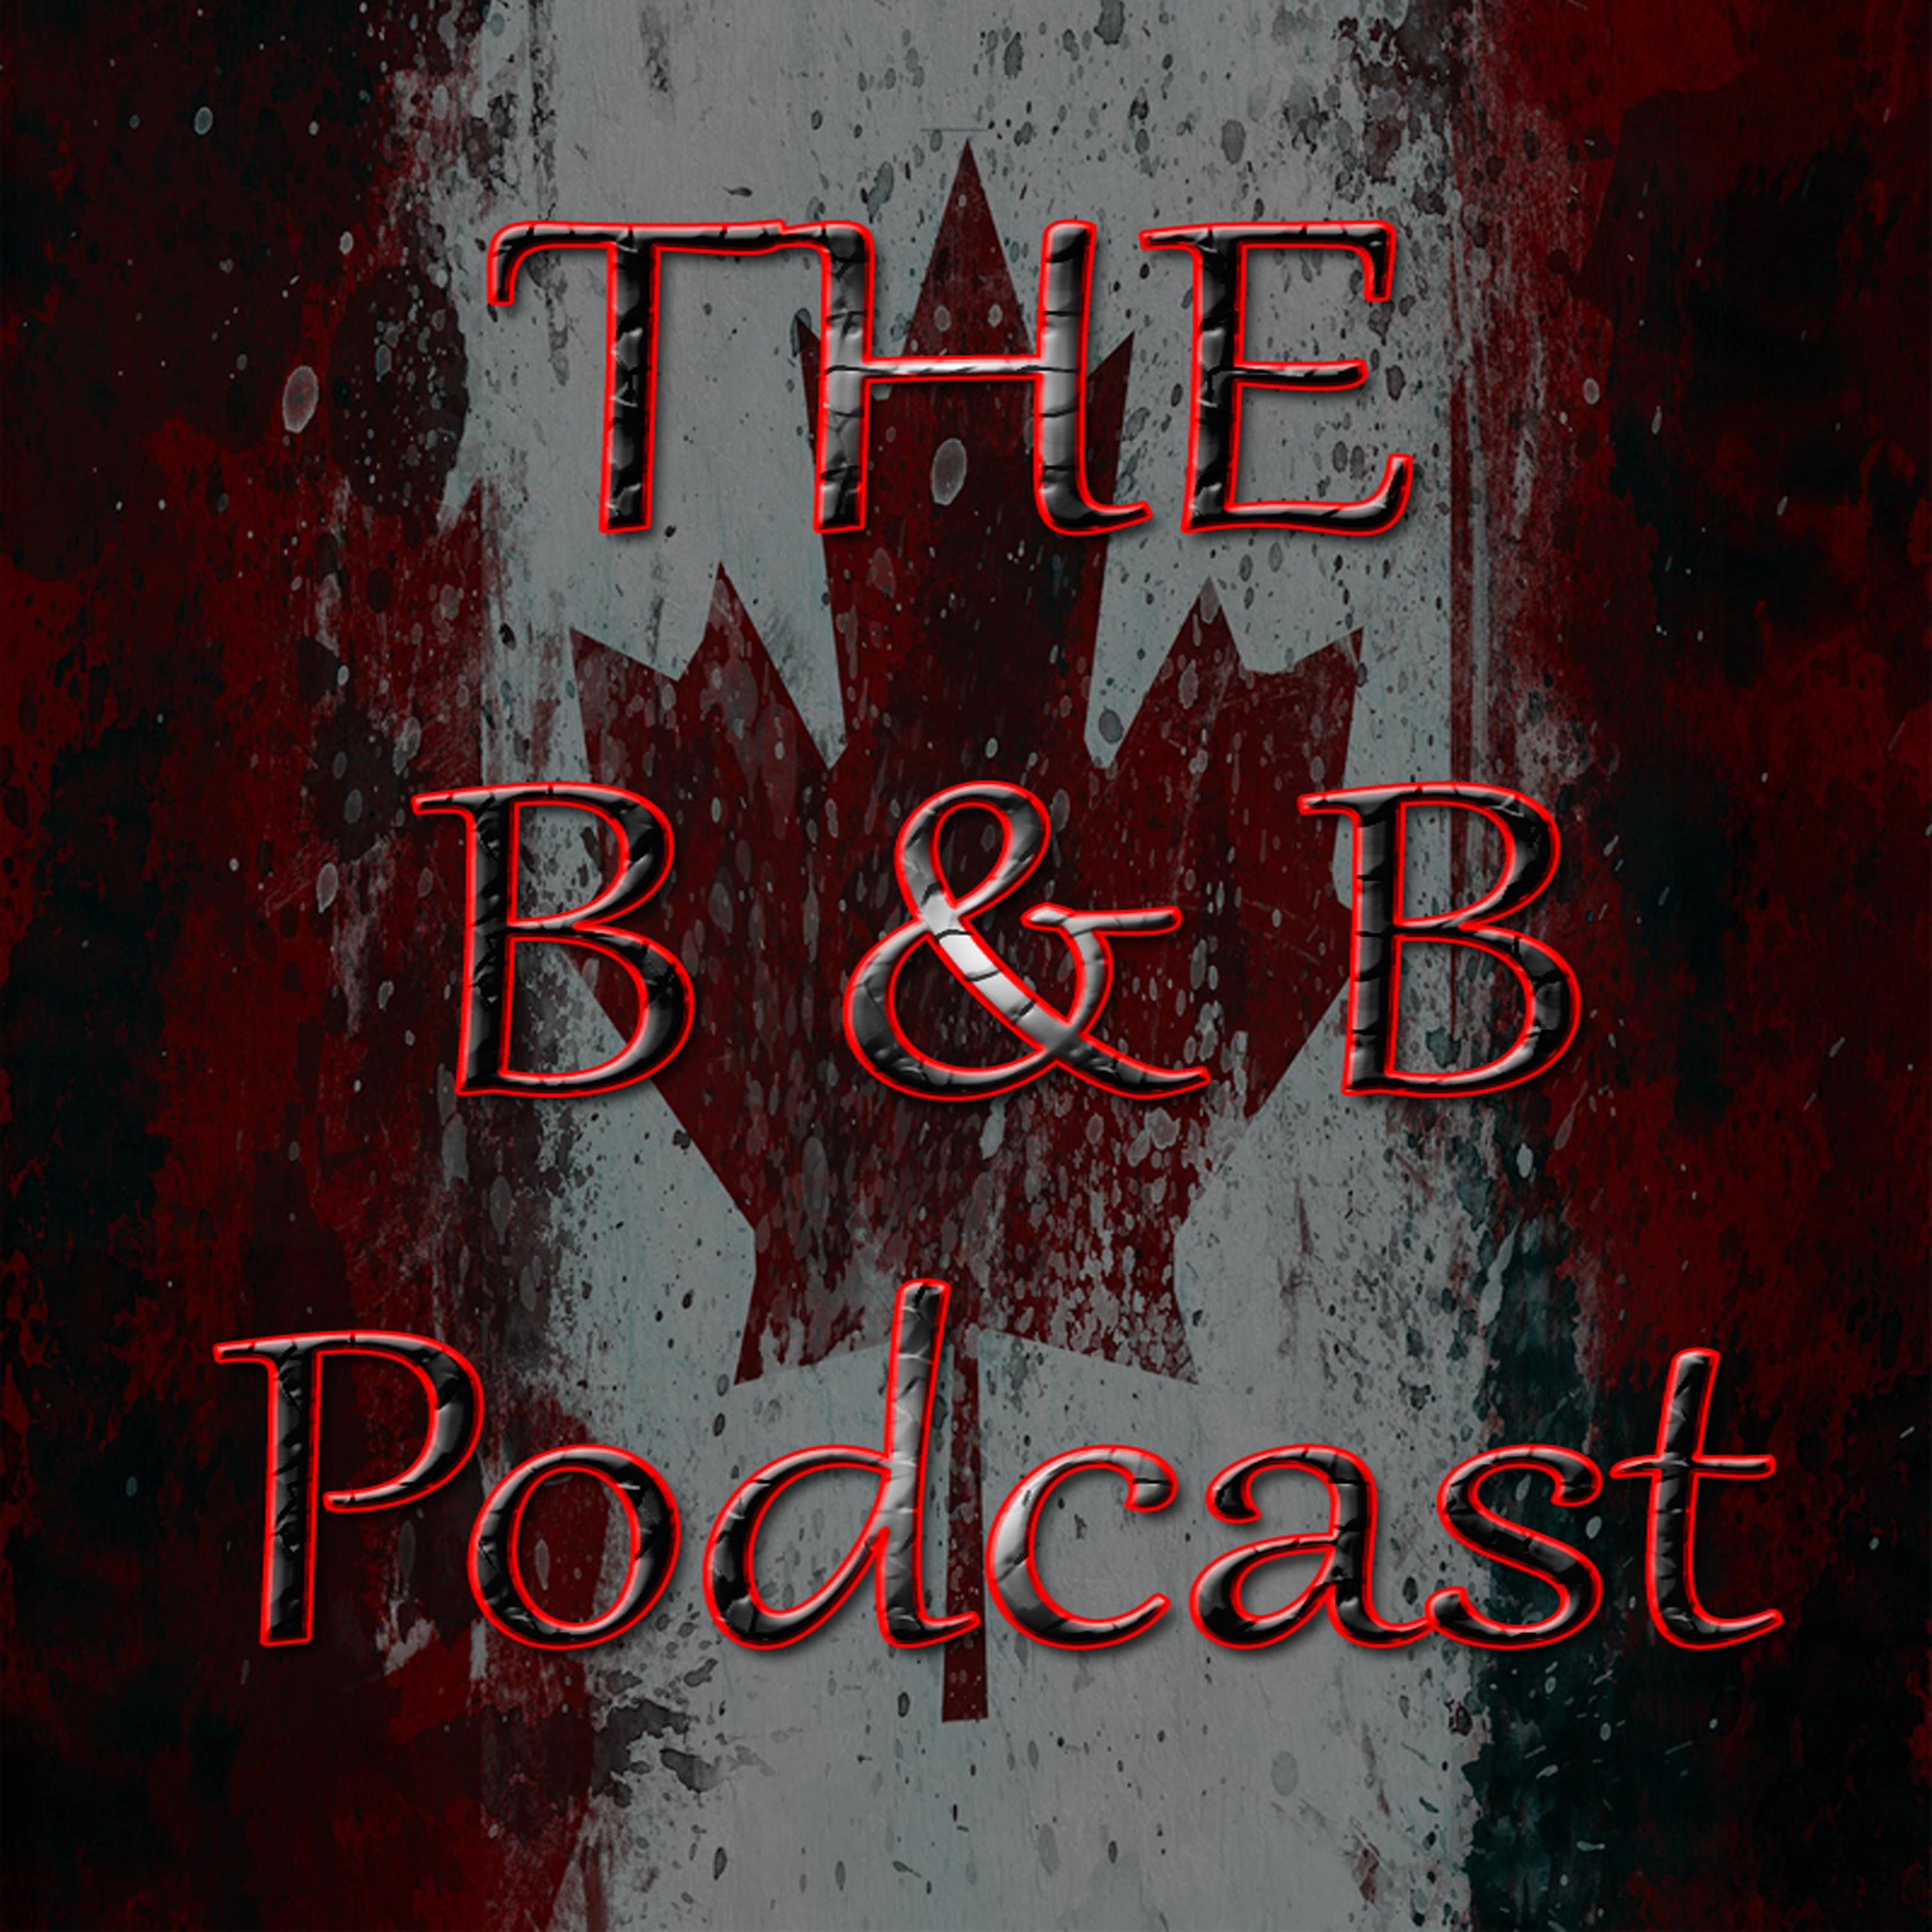 The B&B Podcast